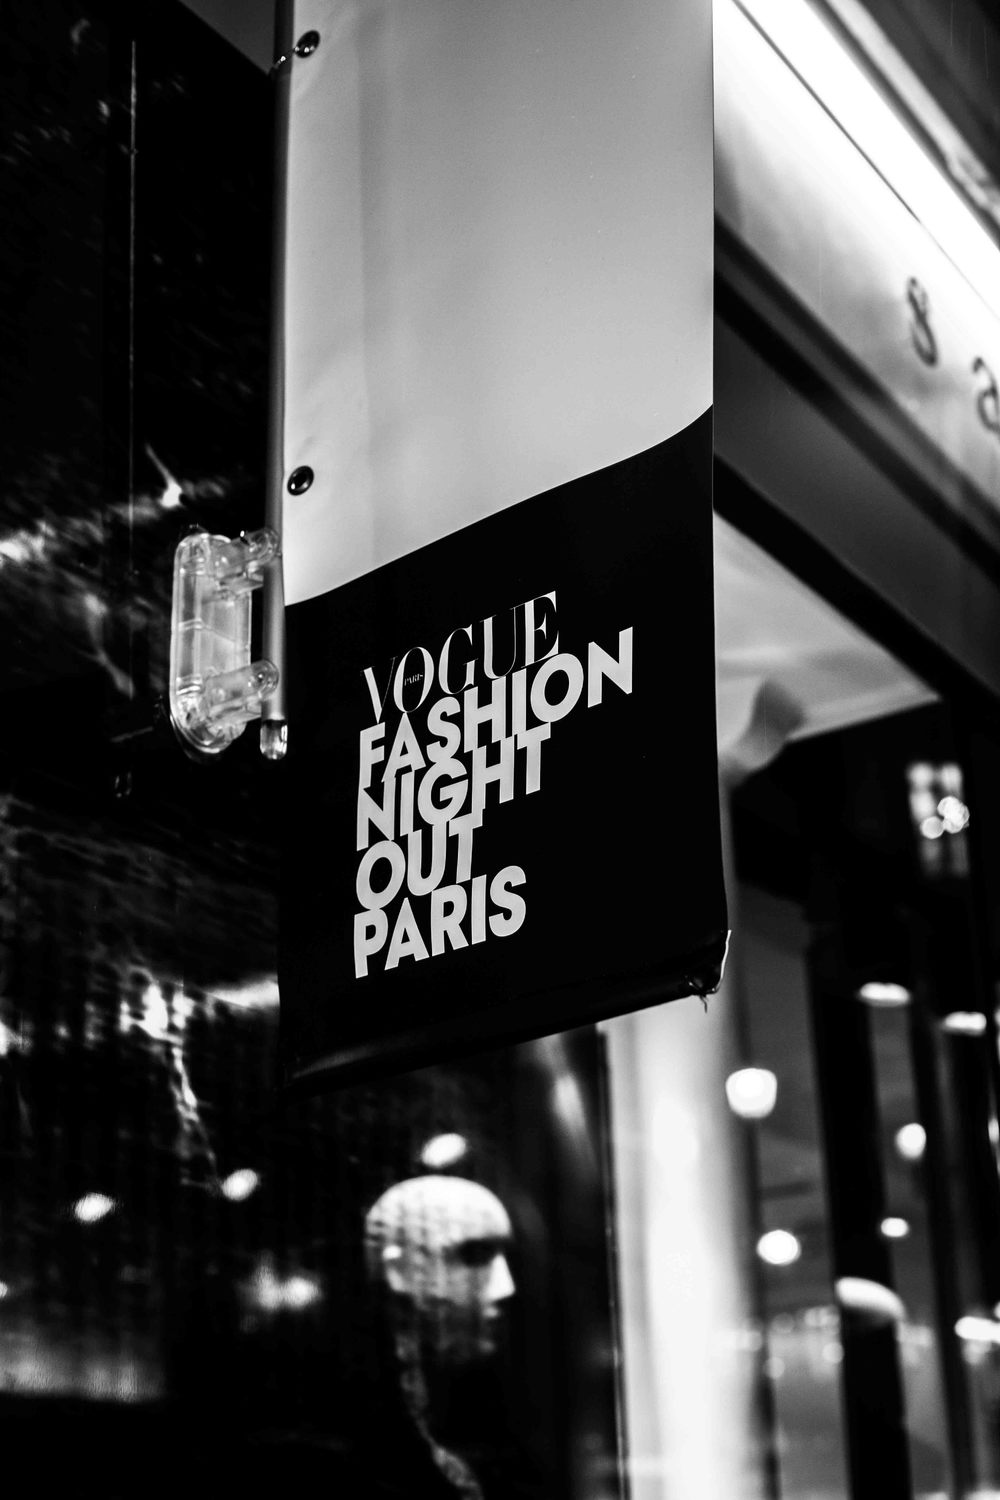 Vogue Fashion Night Out Paris 2013